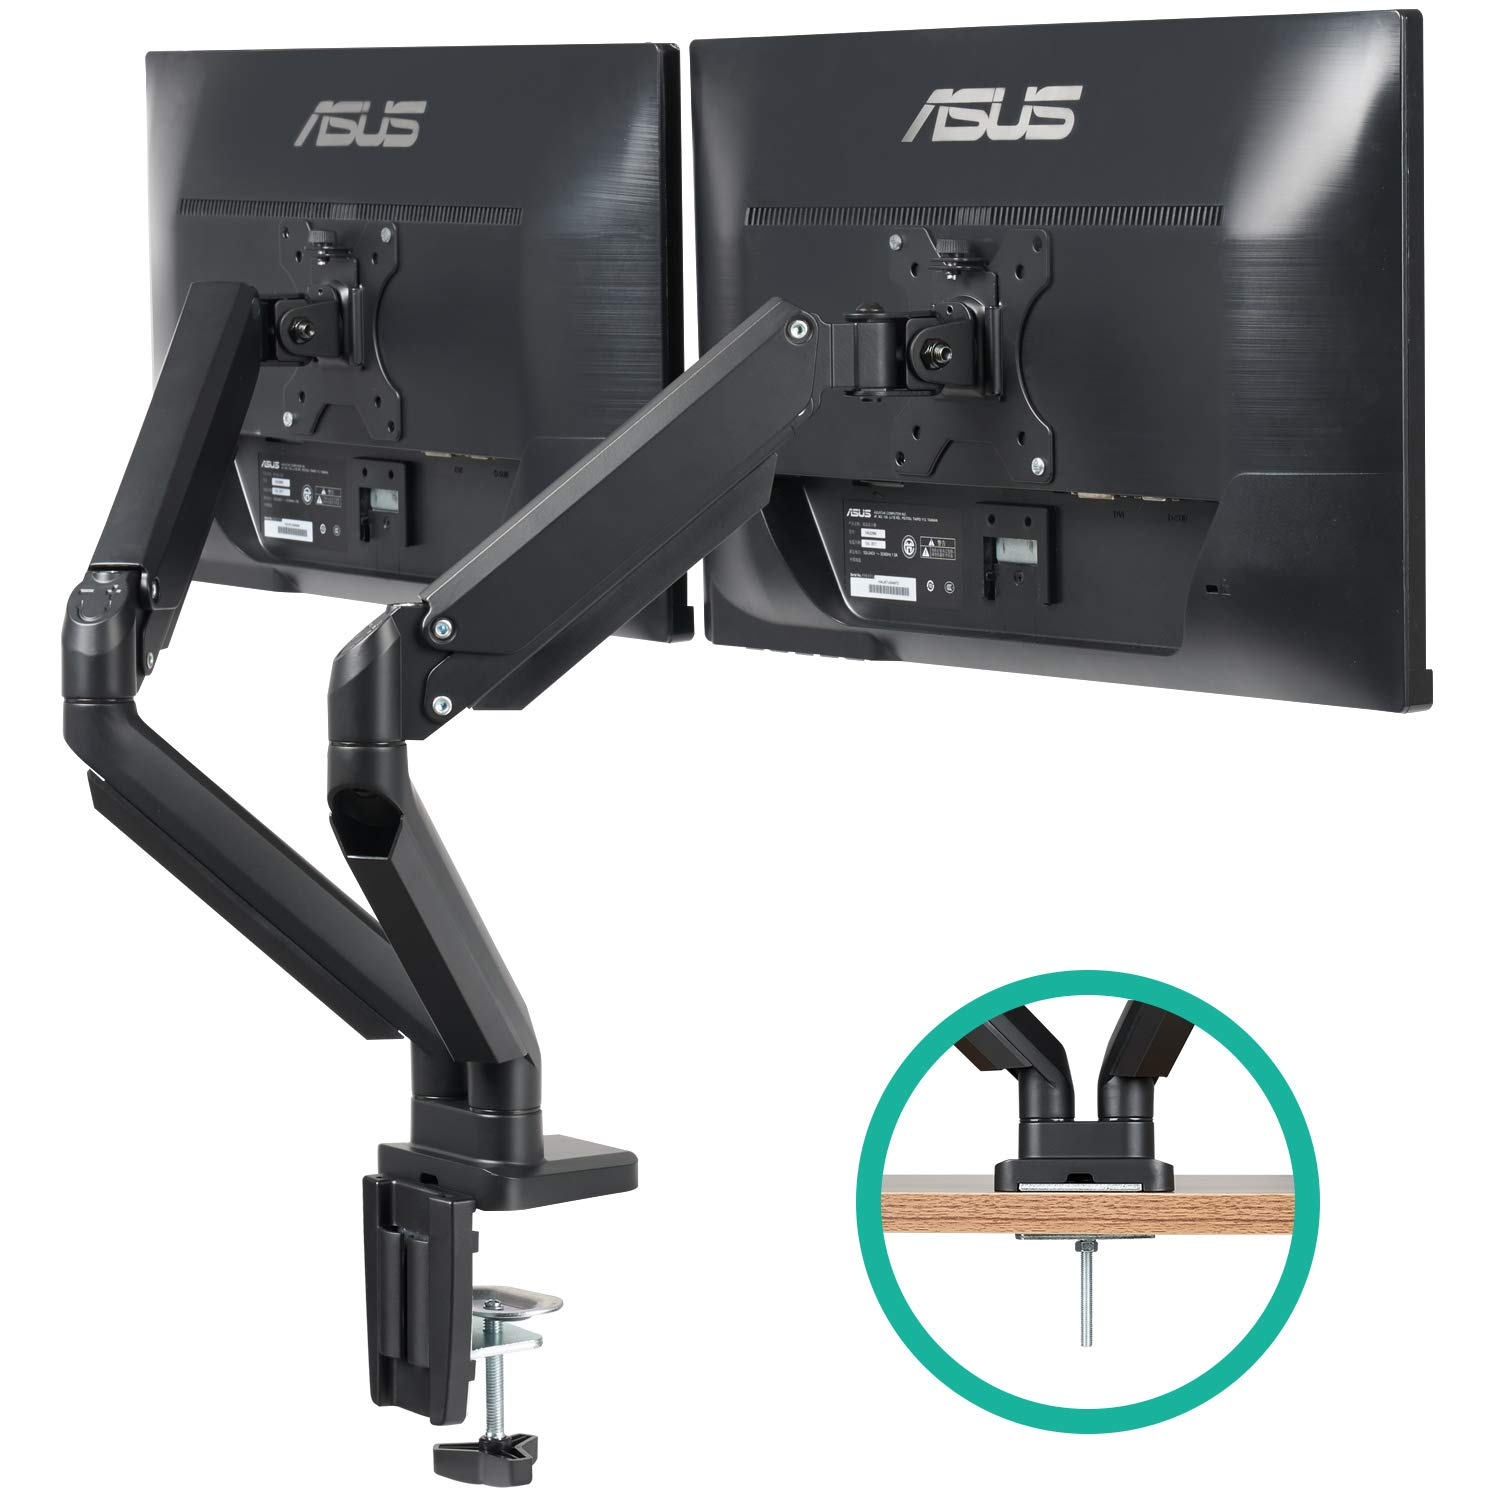 EleTab Dual Monitor Mount Stand - Height Adjustable Monitor Arm Stand Fully Articulating Counterbalance Gas Spring Desk Mount Fits for 2 Computer Screens 17 to 32 inches by EleTab